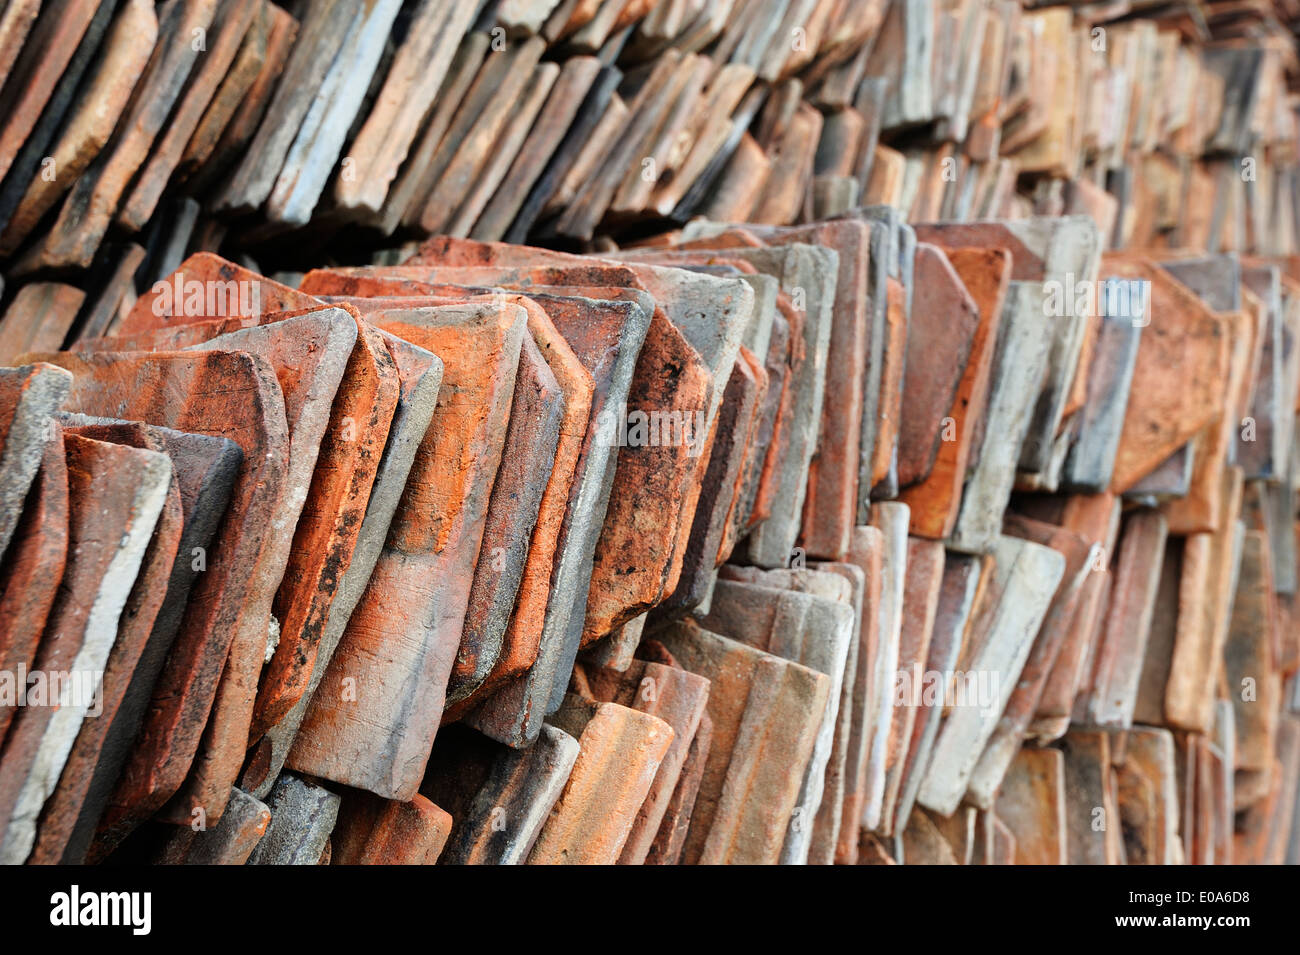 Clay Roof Tiles Stock Photos Amp Clay Roof Tiles Stock